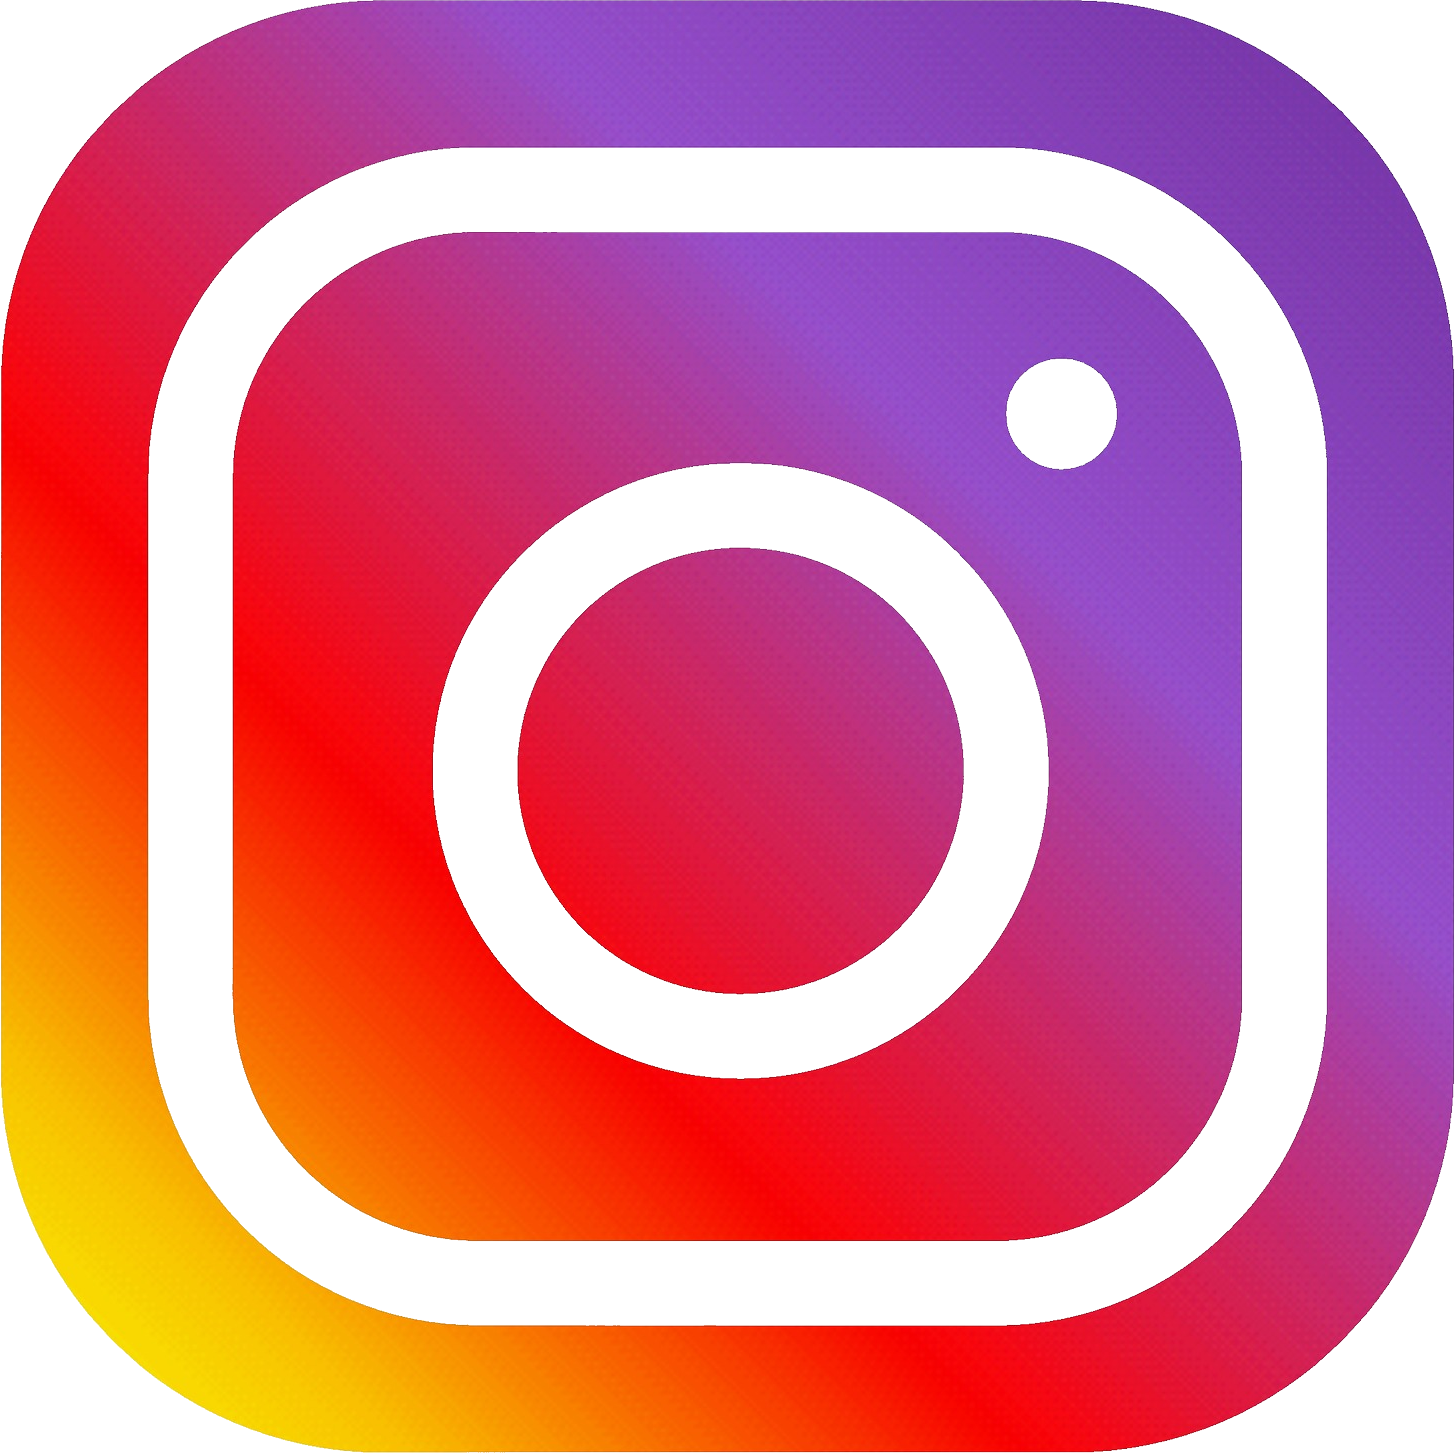 Instagram logos PNG images free download in instagram clipart png.